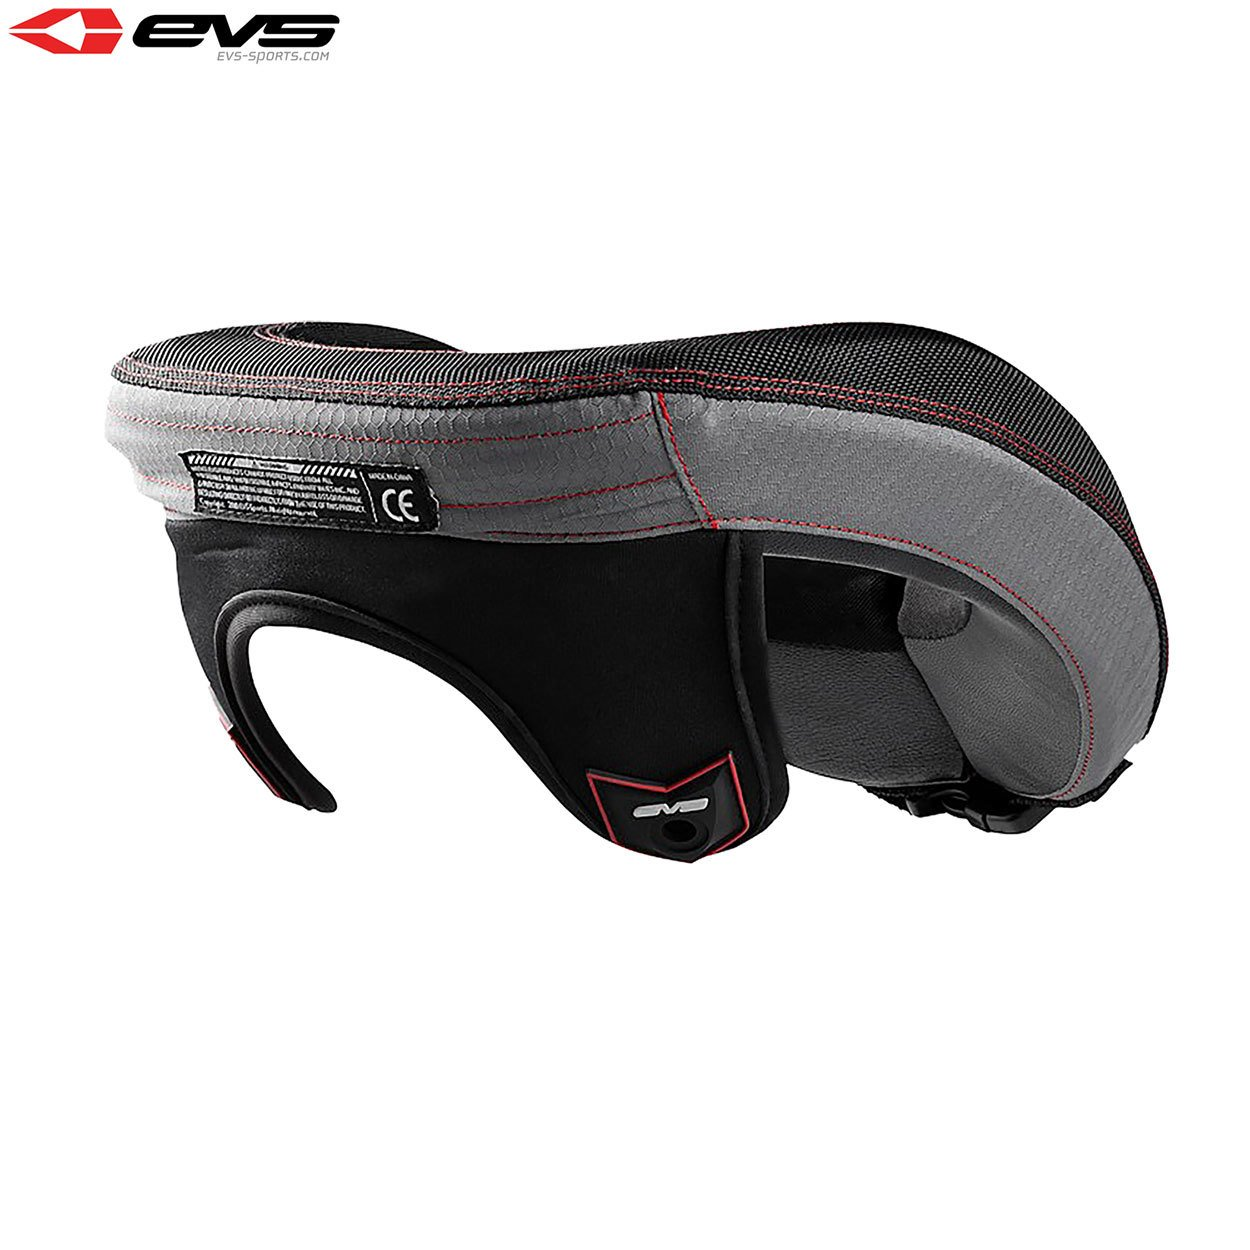 112053-0109 EVS R3 Neck Protector Race Collar